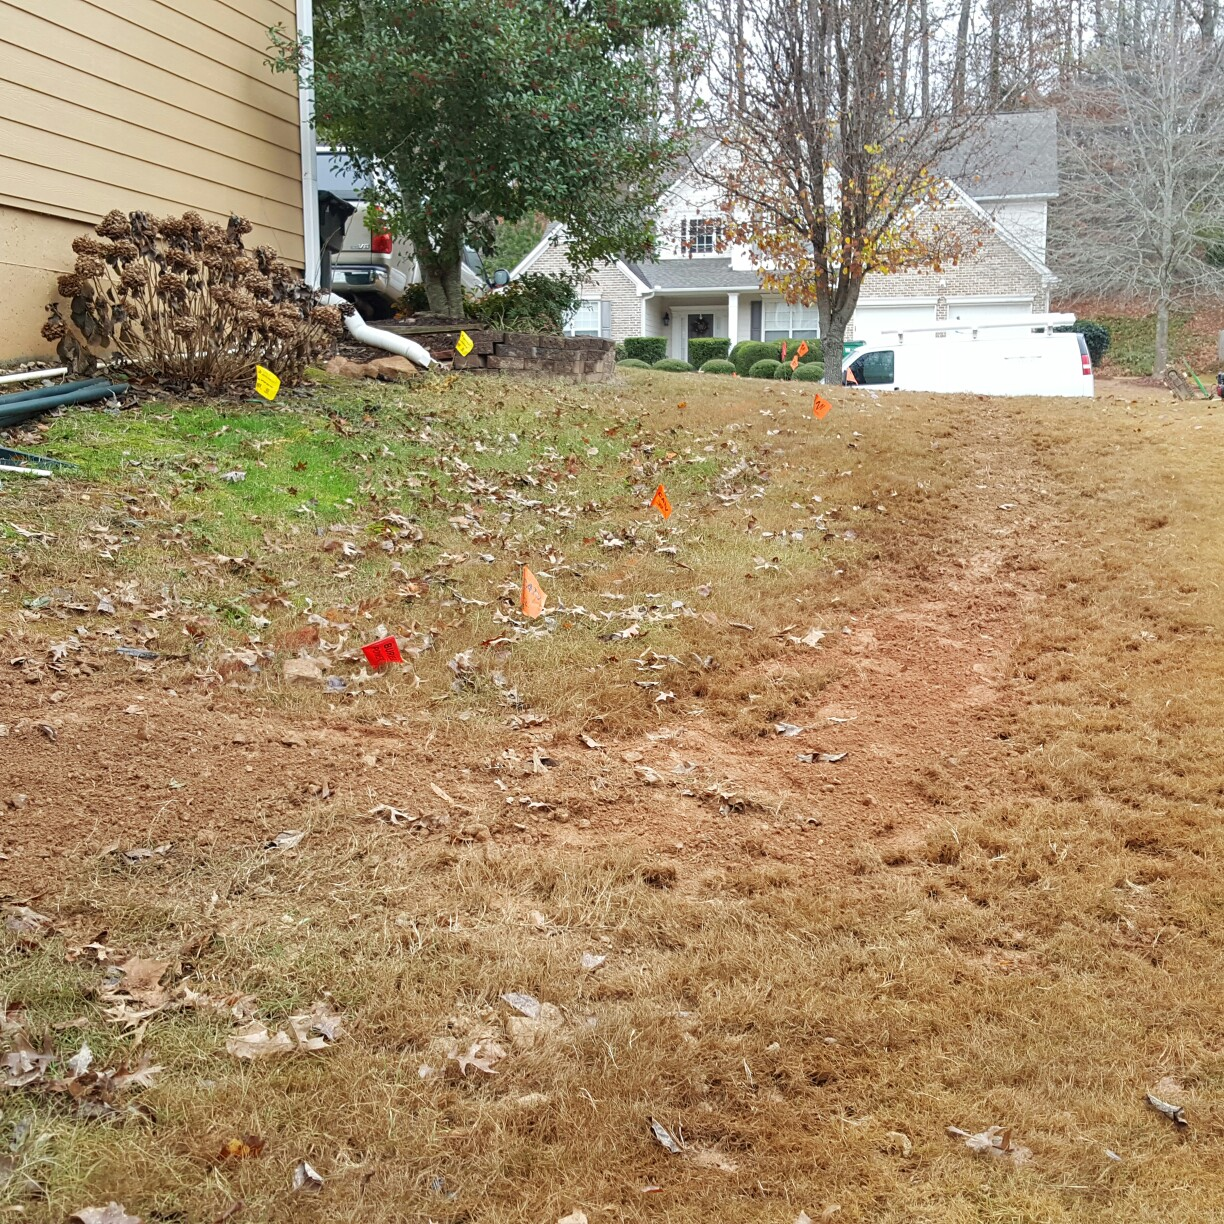 This is how the yard looks after a new water line was installed.